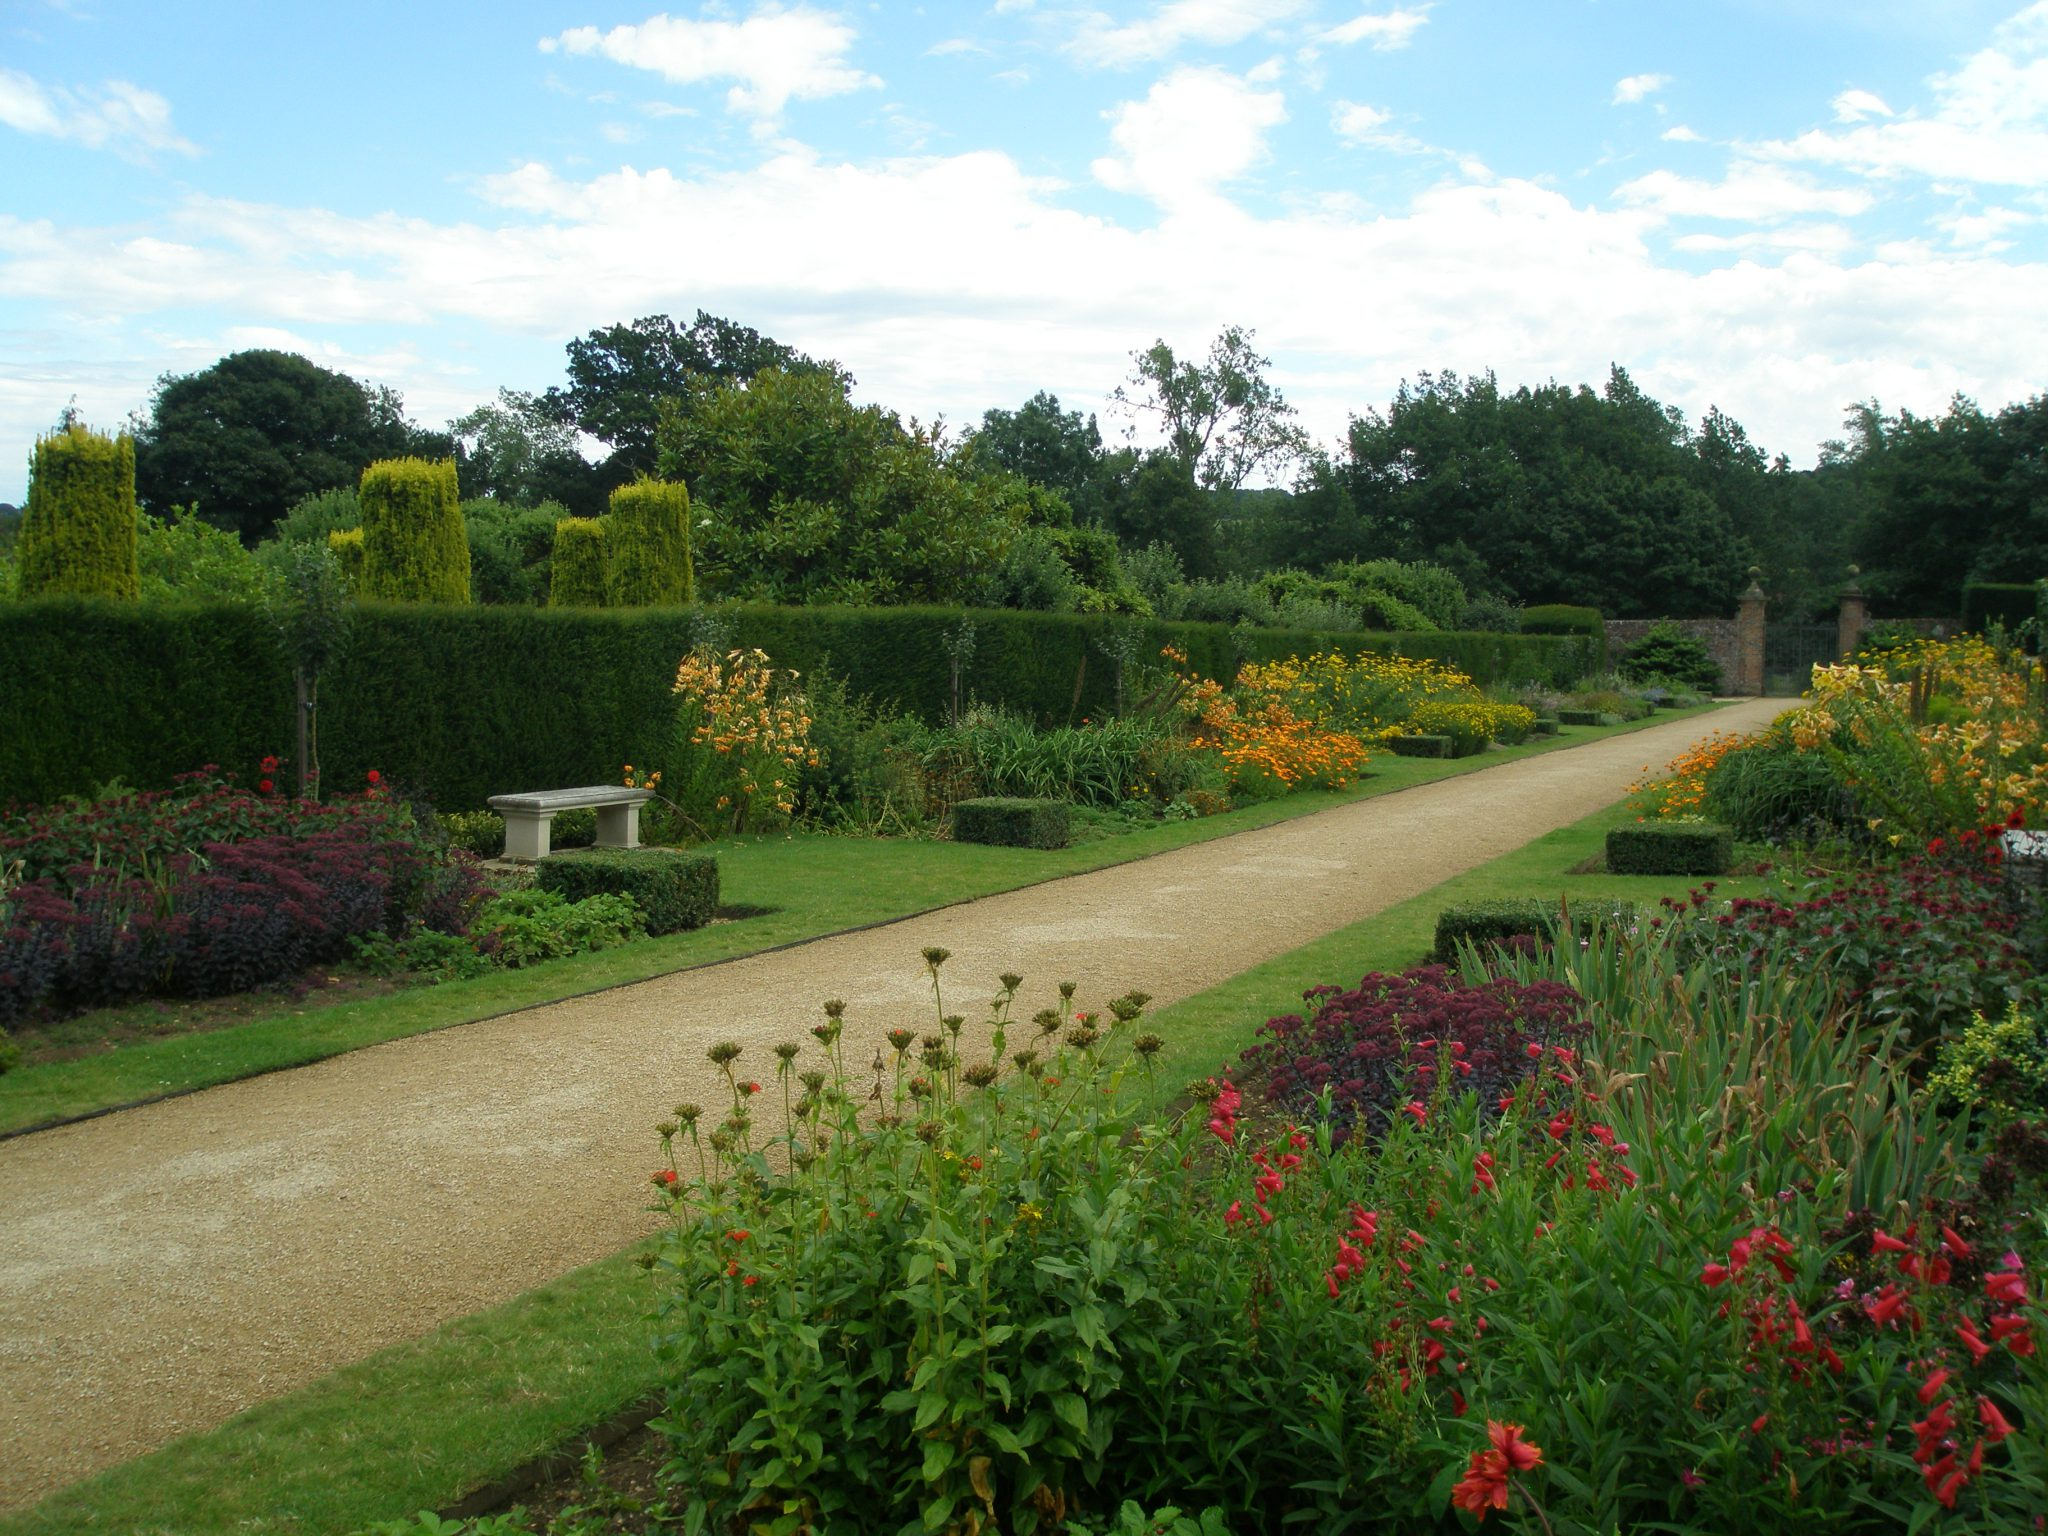 The Jubilee Walk was added to the gardens in 2012, and designed by George Carter, a RHS Chelsea Flower Show Gold Medallist. The Walk is 236 feet long, and planted as a double herbaceous border, with each of the five bays planted in a dominant color, the sequence moving from red through orange, yellow, and pink to blue.